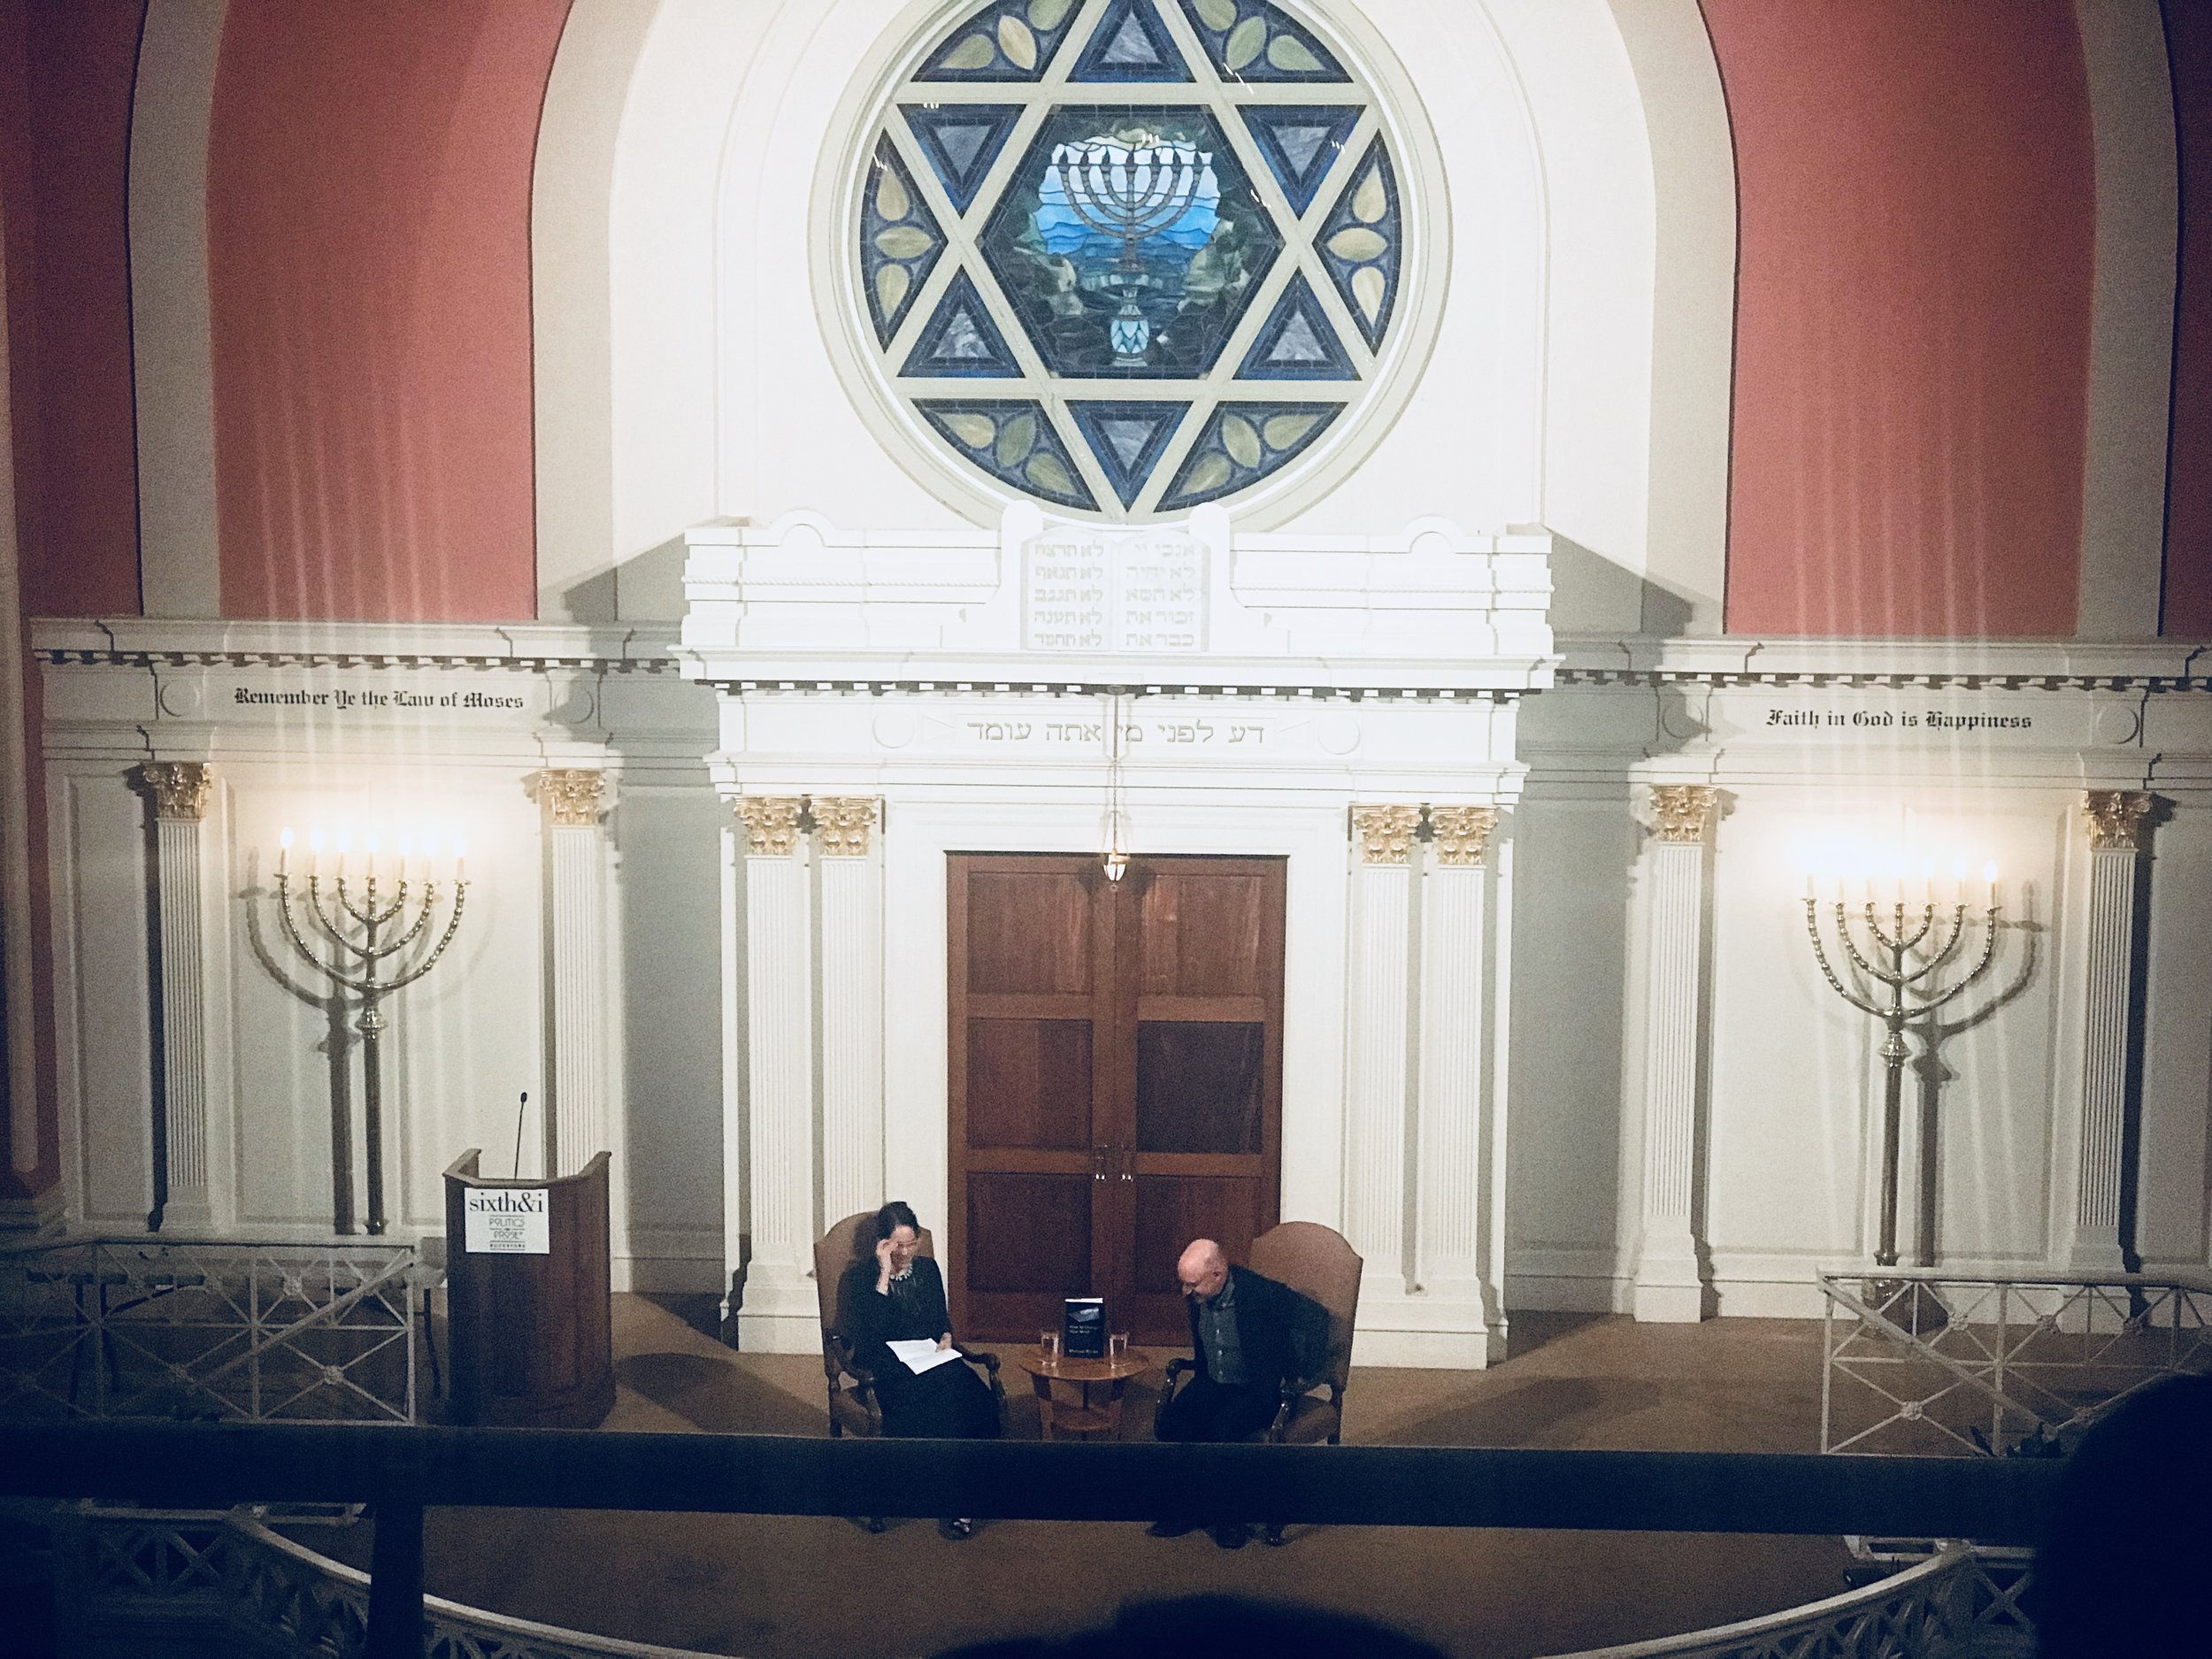 Michael Pollan and Alix Spiegel at the Sixth & I synagogue. I was seated in the balcony.